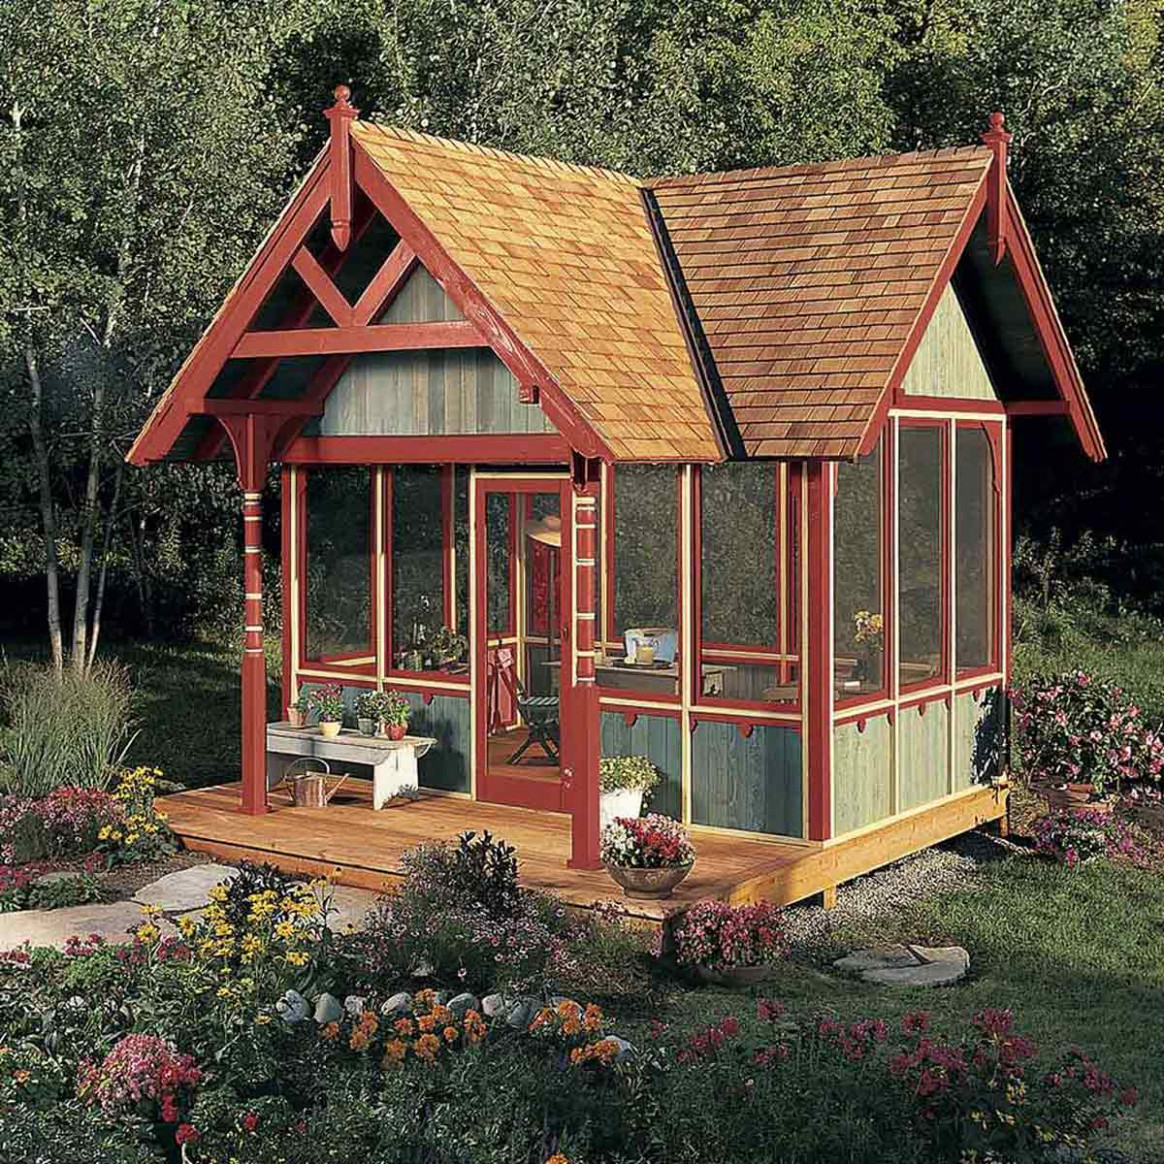 12 Tips For Turning A Shed Into A Tiny Hideaway | The Family ..